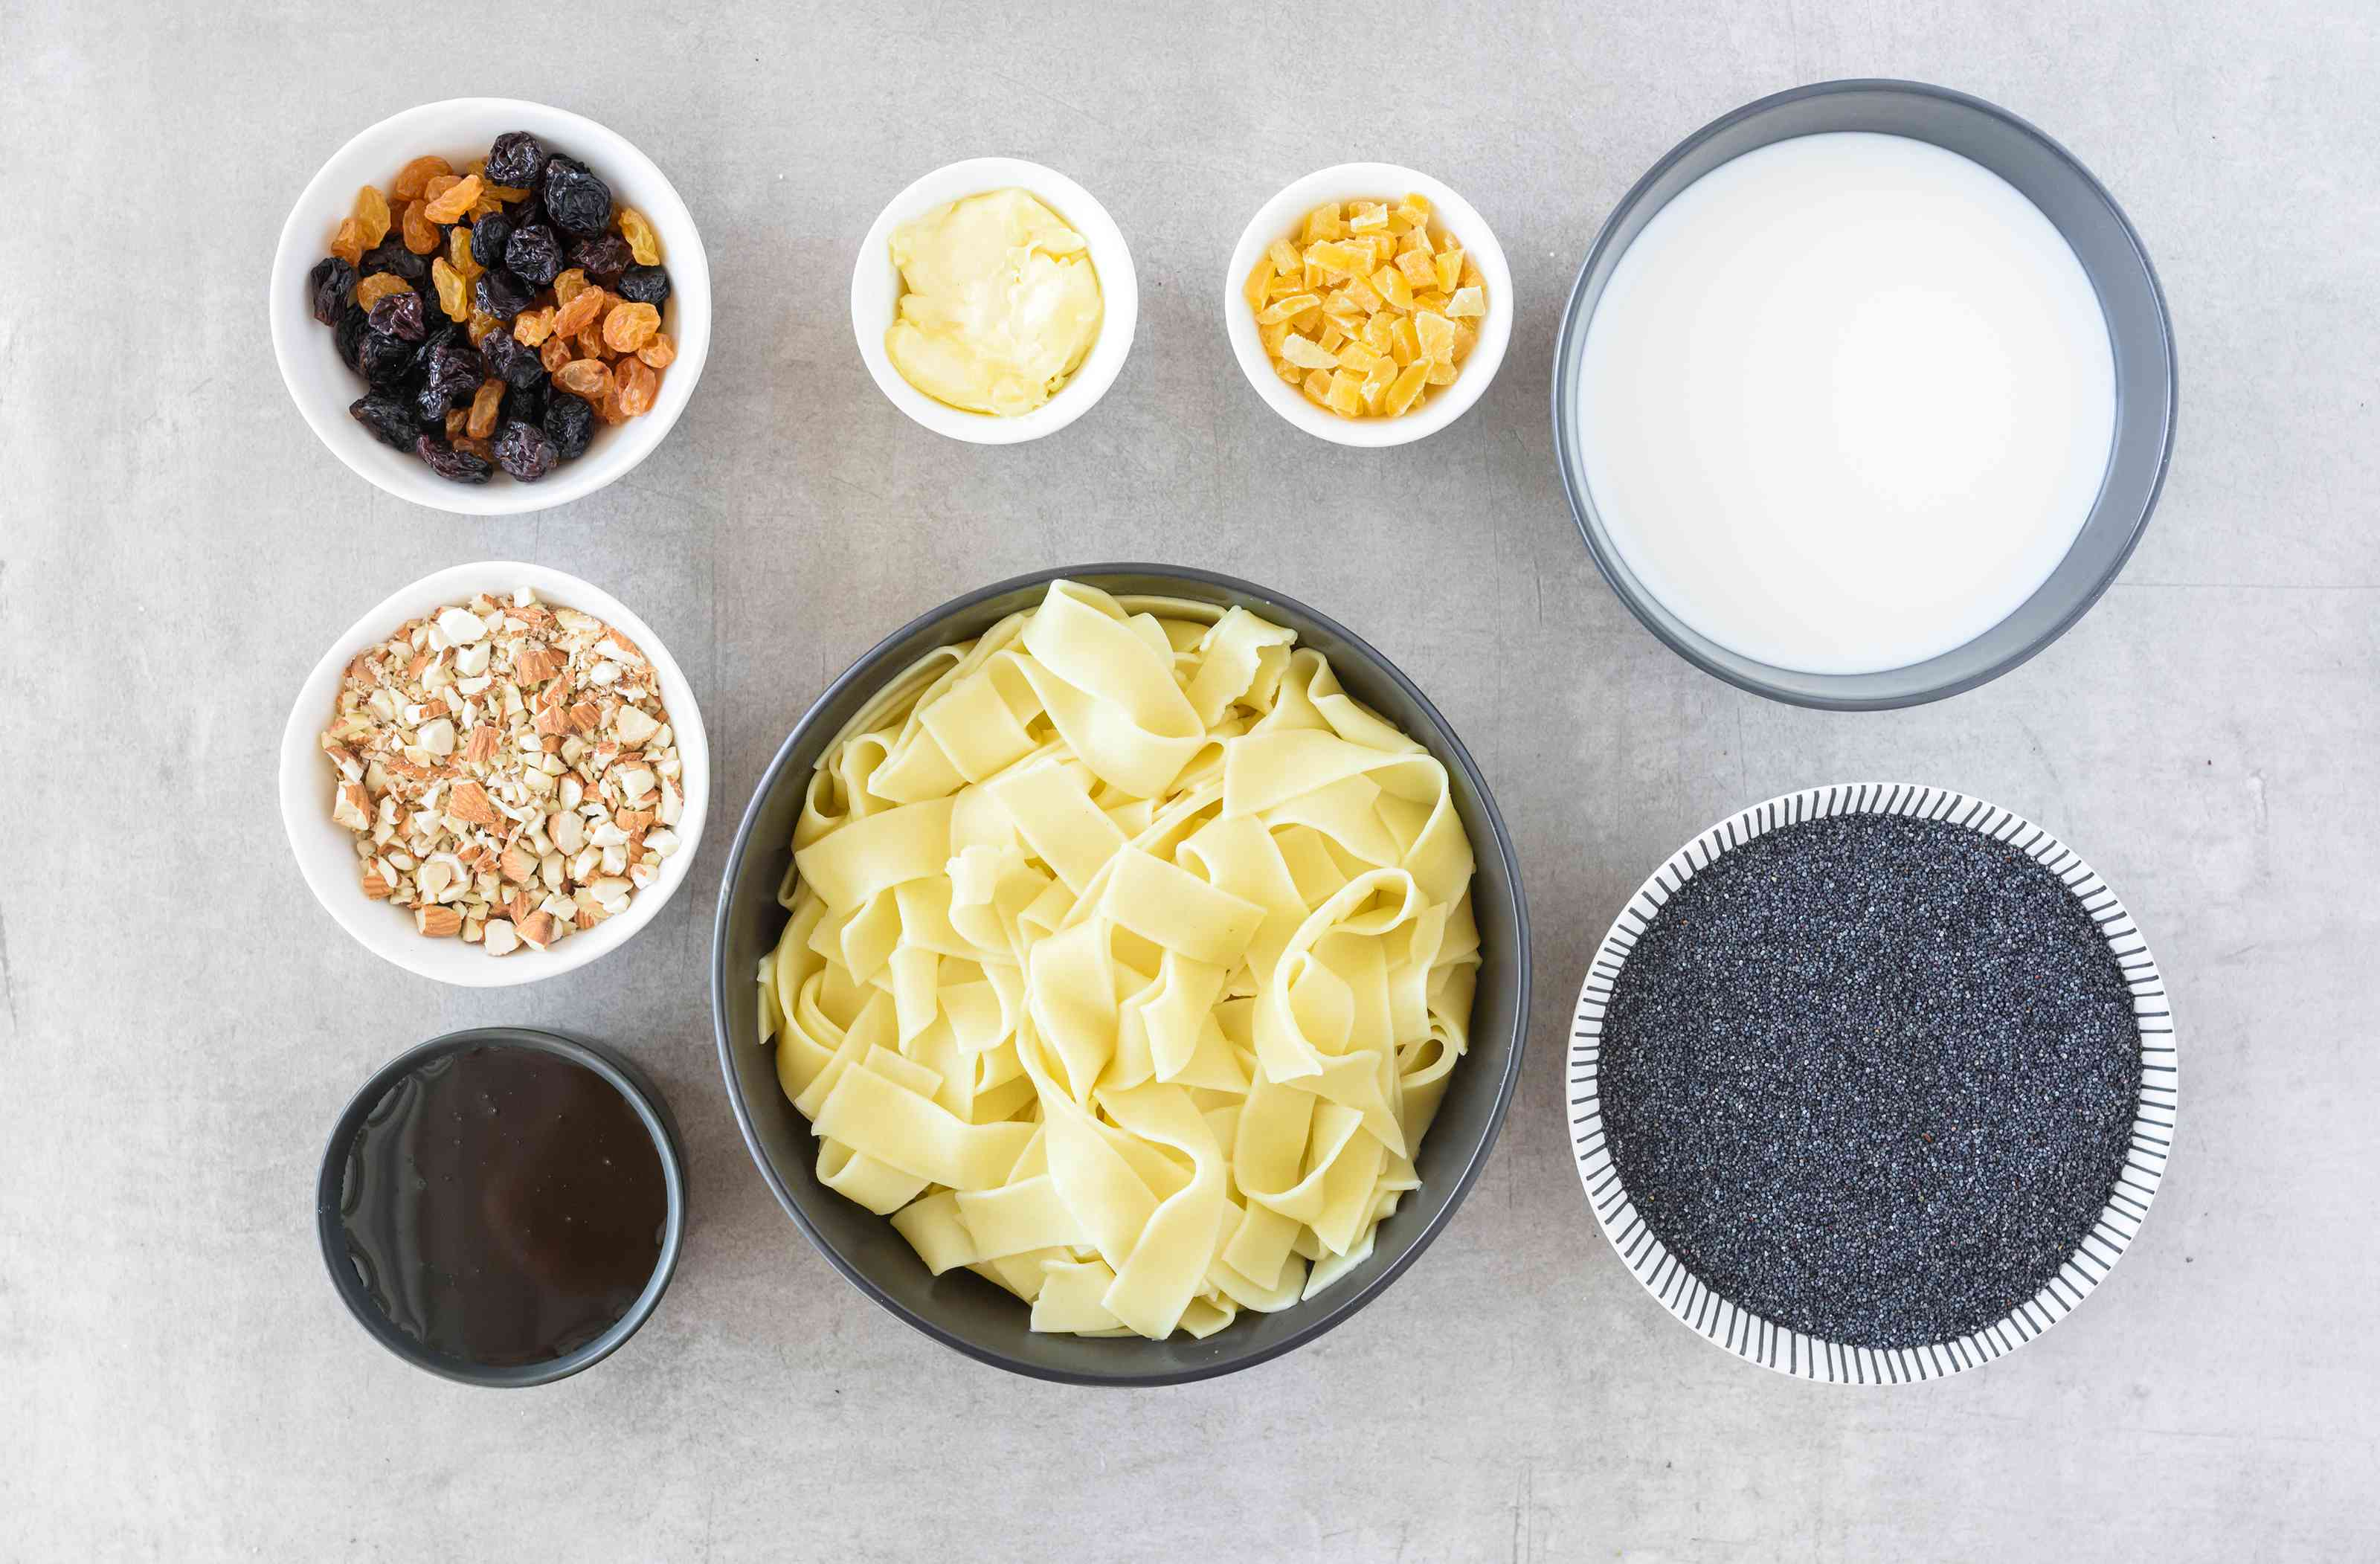 Ingredients for Polish noodles with poppyseeds